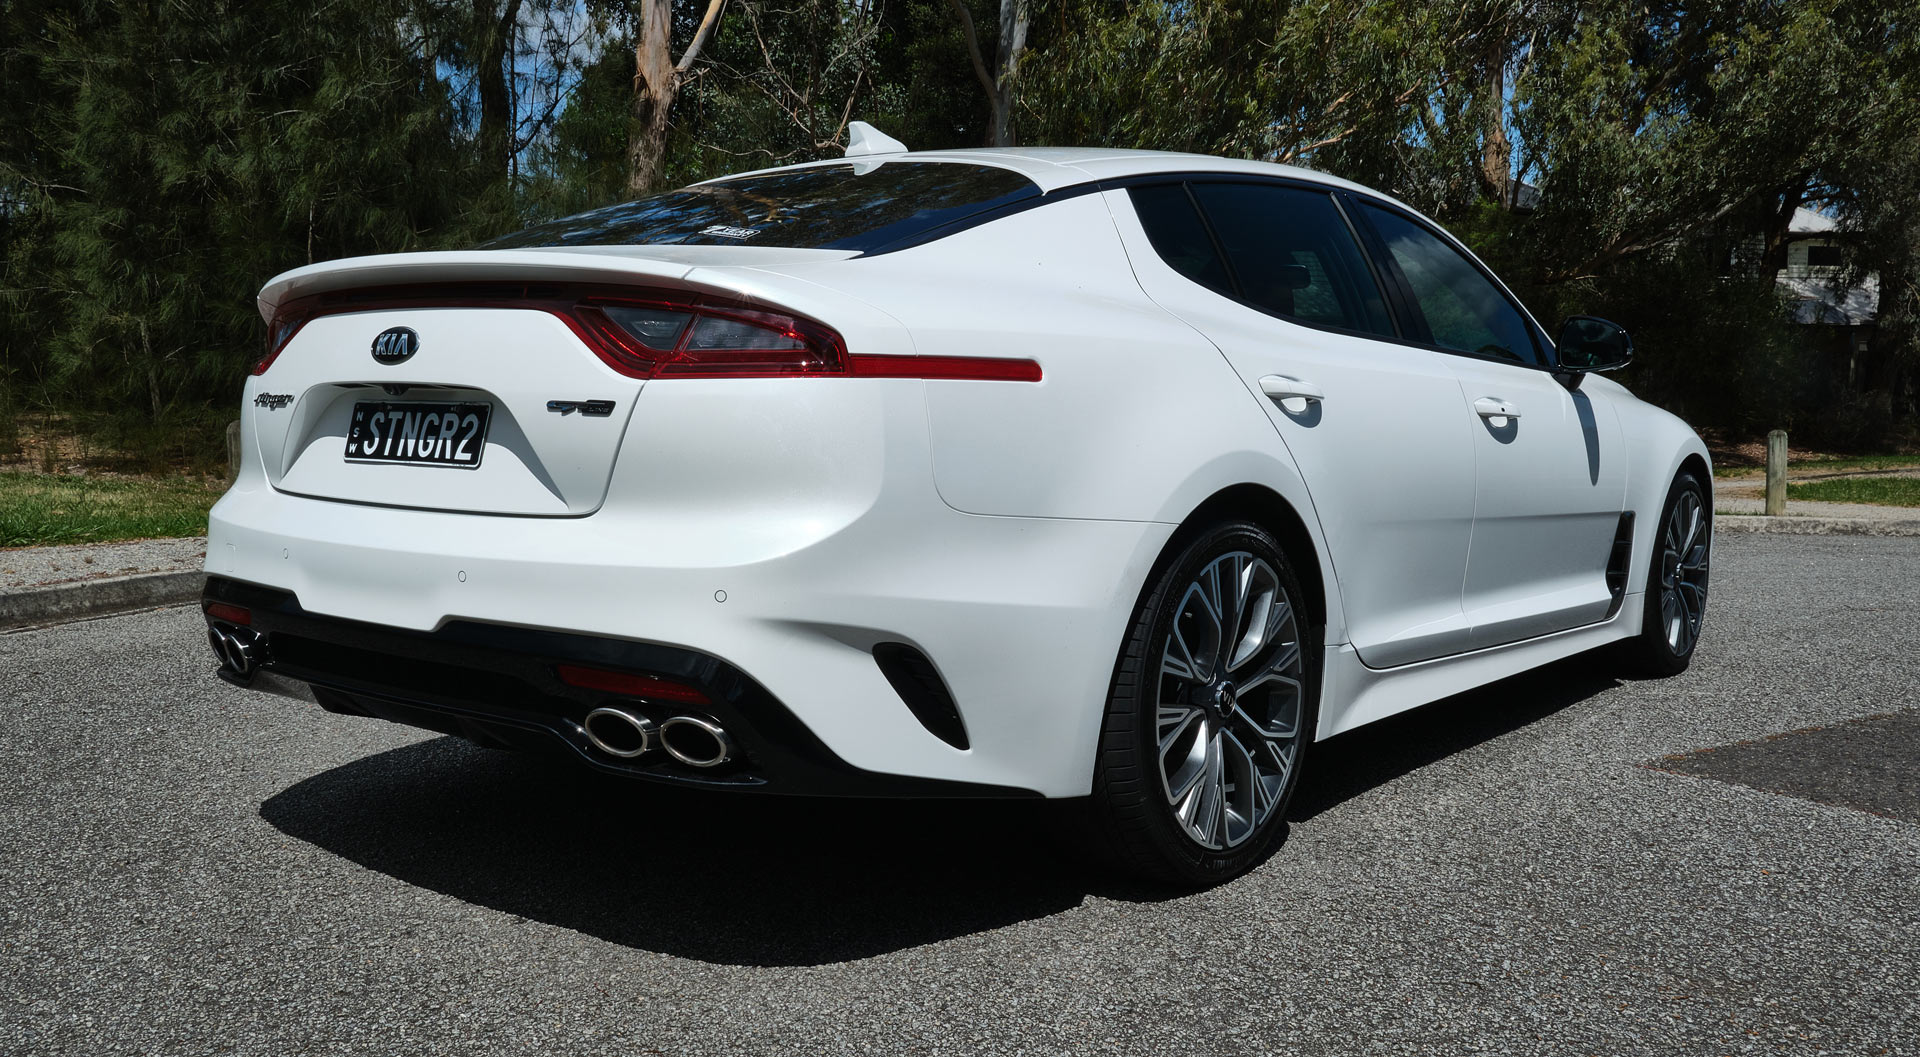 driven: 2020 kia stinger 2.0l gt-line surprises as a